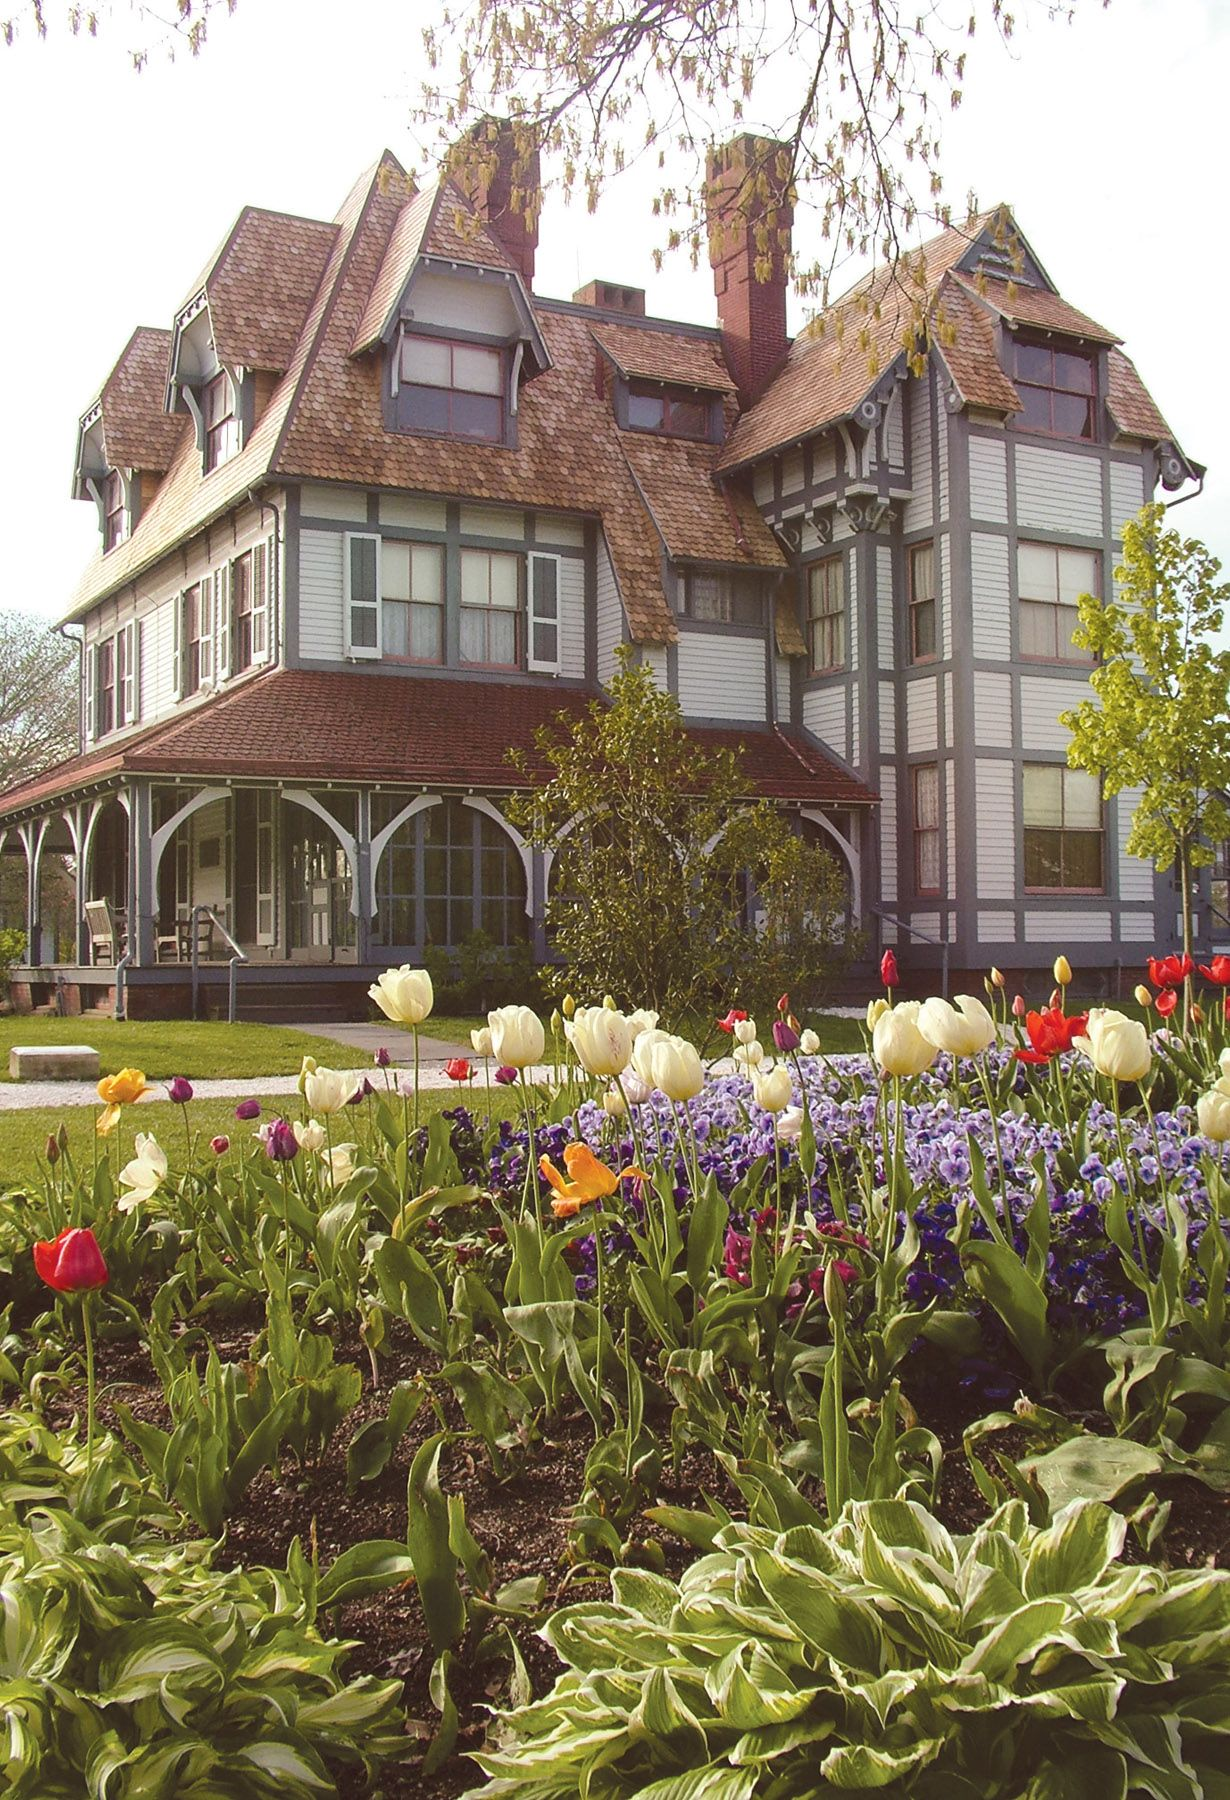 Emlen Physick Estate (shown here), visitors can stroll through the restored grounds and gardens and tour the 1879 home that is Cape May NJ's only Victorian house museum.